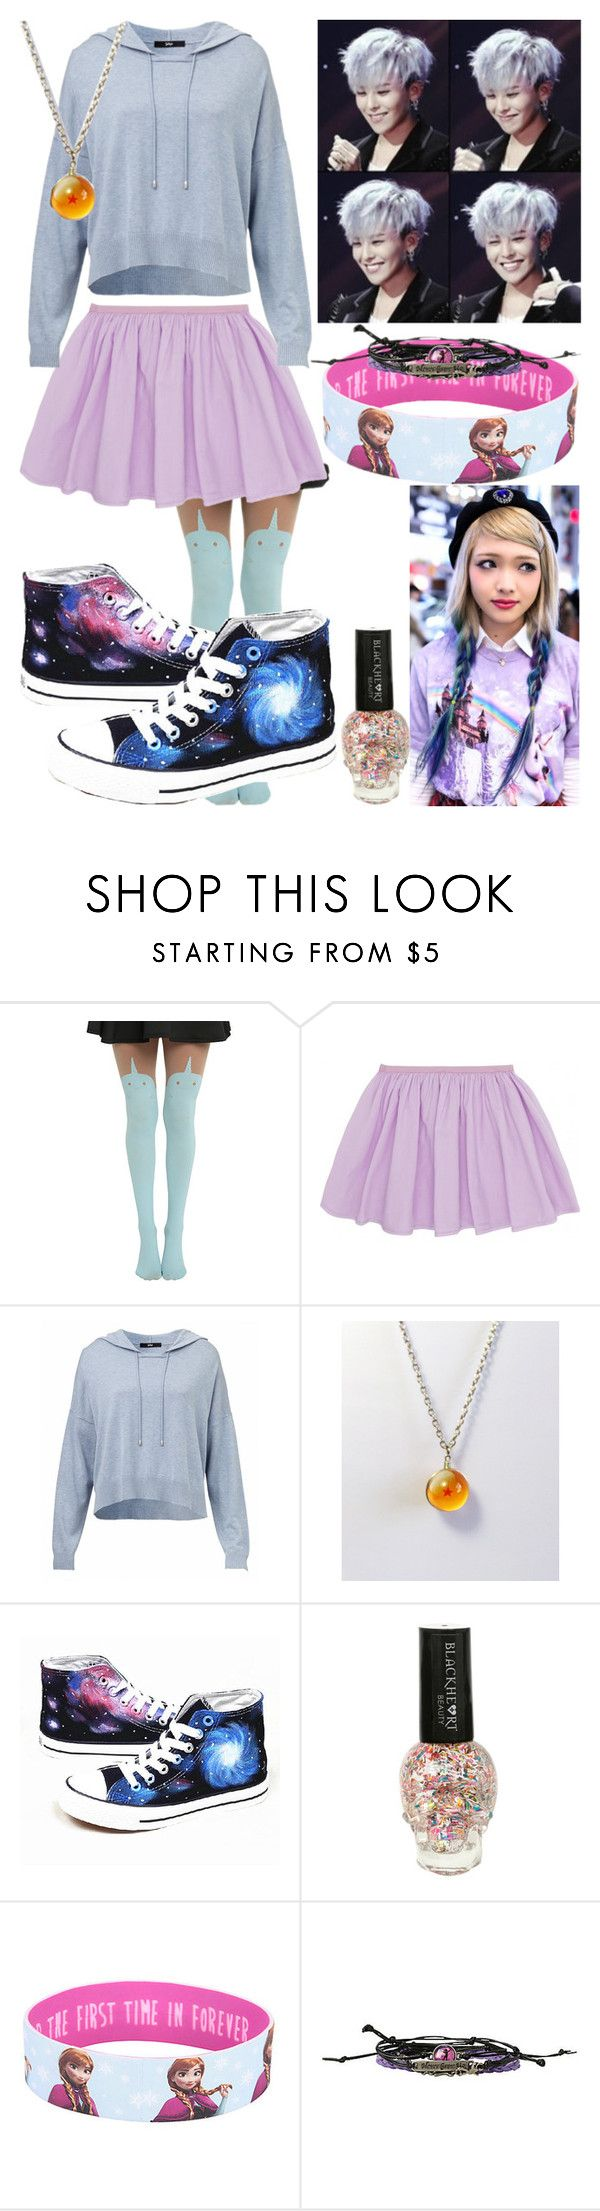 """""""Getting my Crayon with G Dragon"""" by mikupayneluvs1d ❤ liked on Polyvore featuring moda, Converse i Disney"""